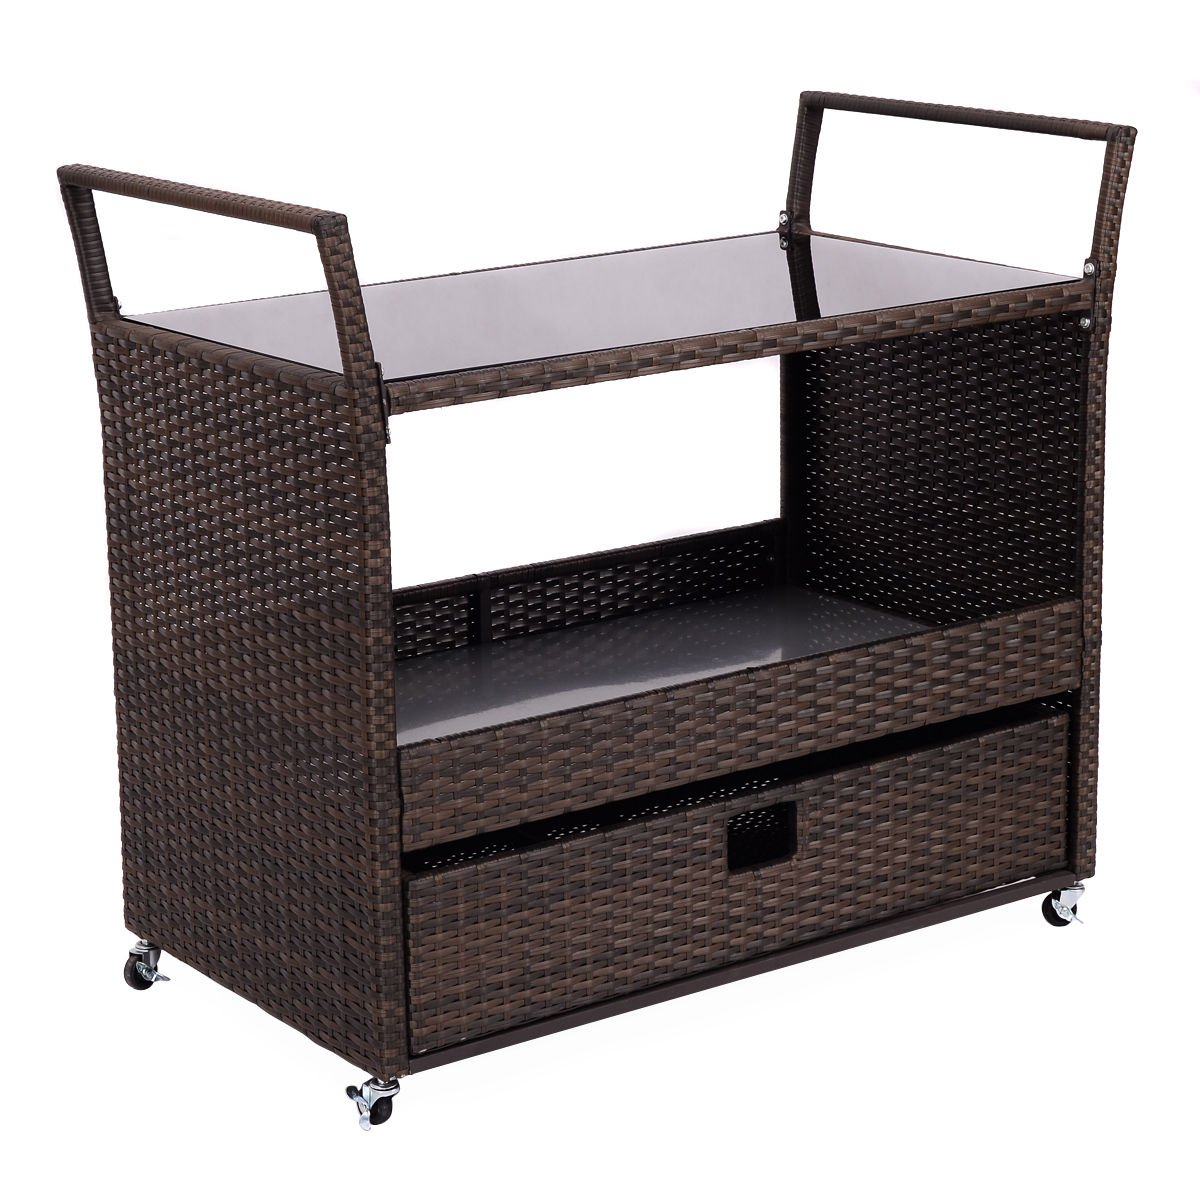 Kitchen Trolley Cart Rolling Portable for Dining Restaurant with Shelves Rattan Wicker